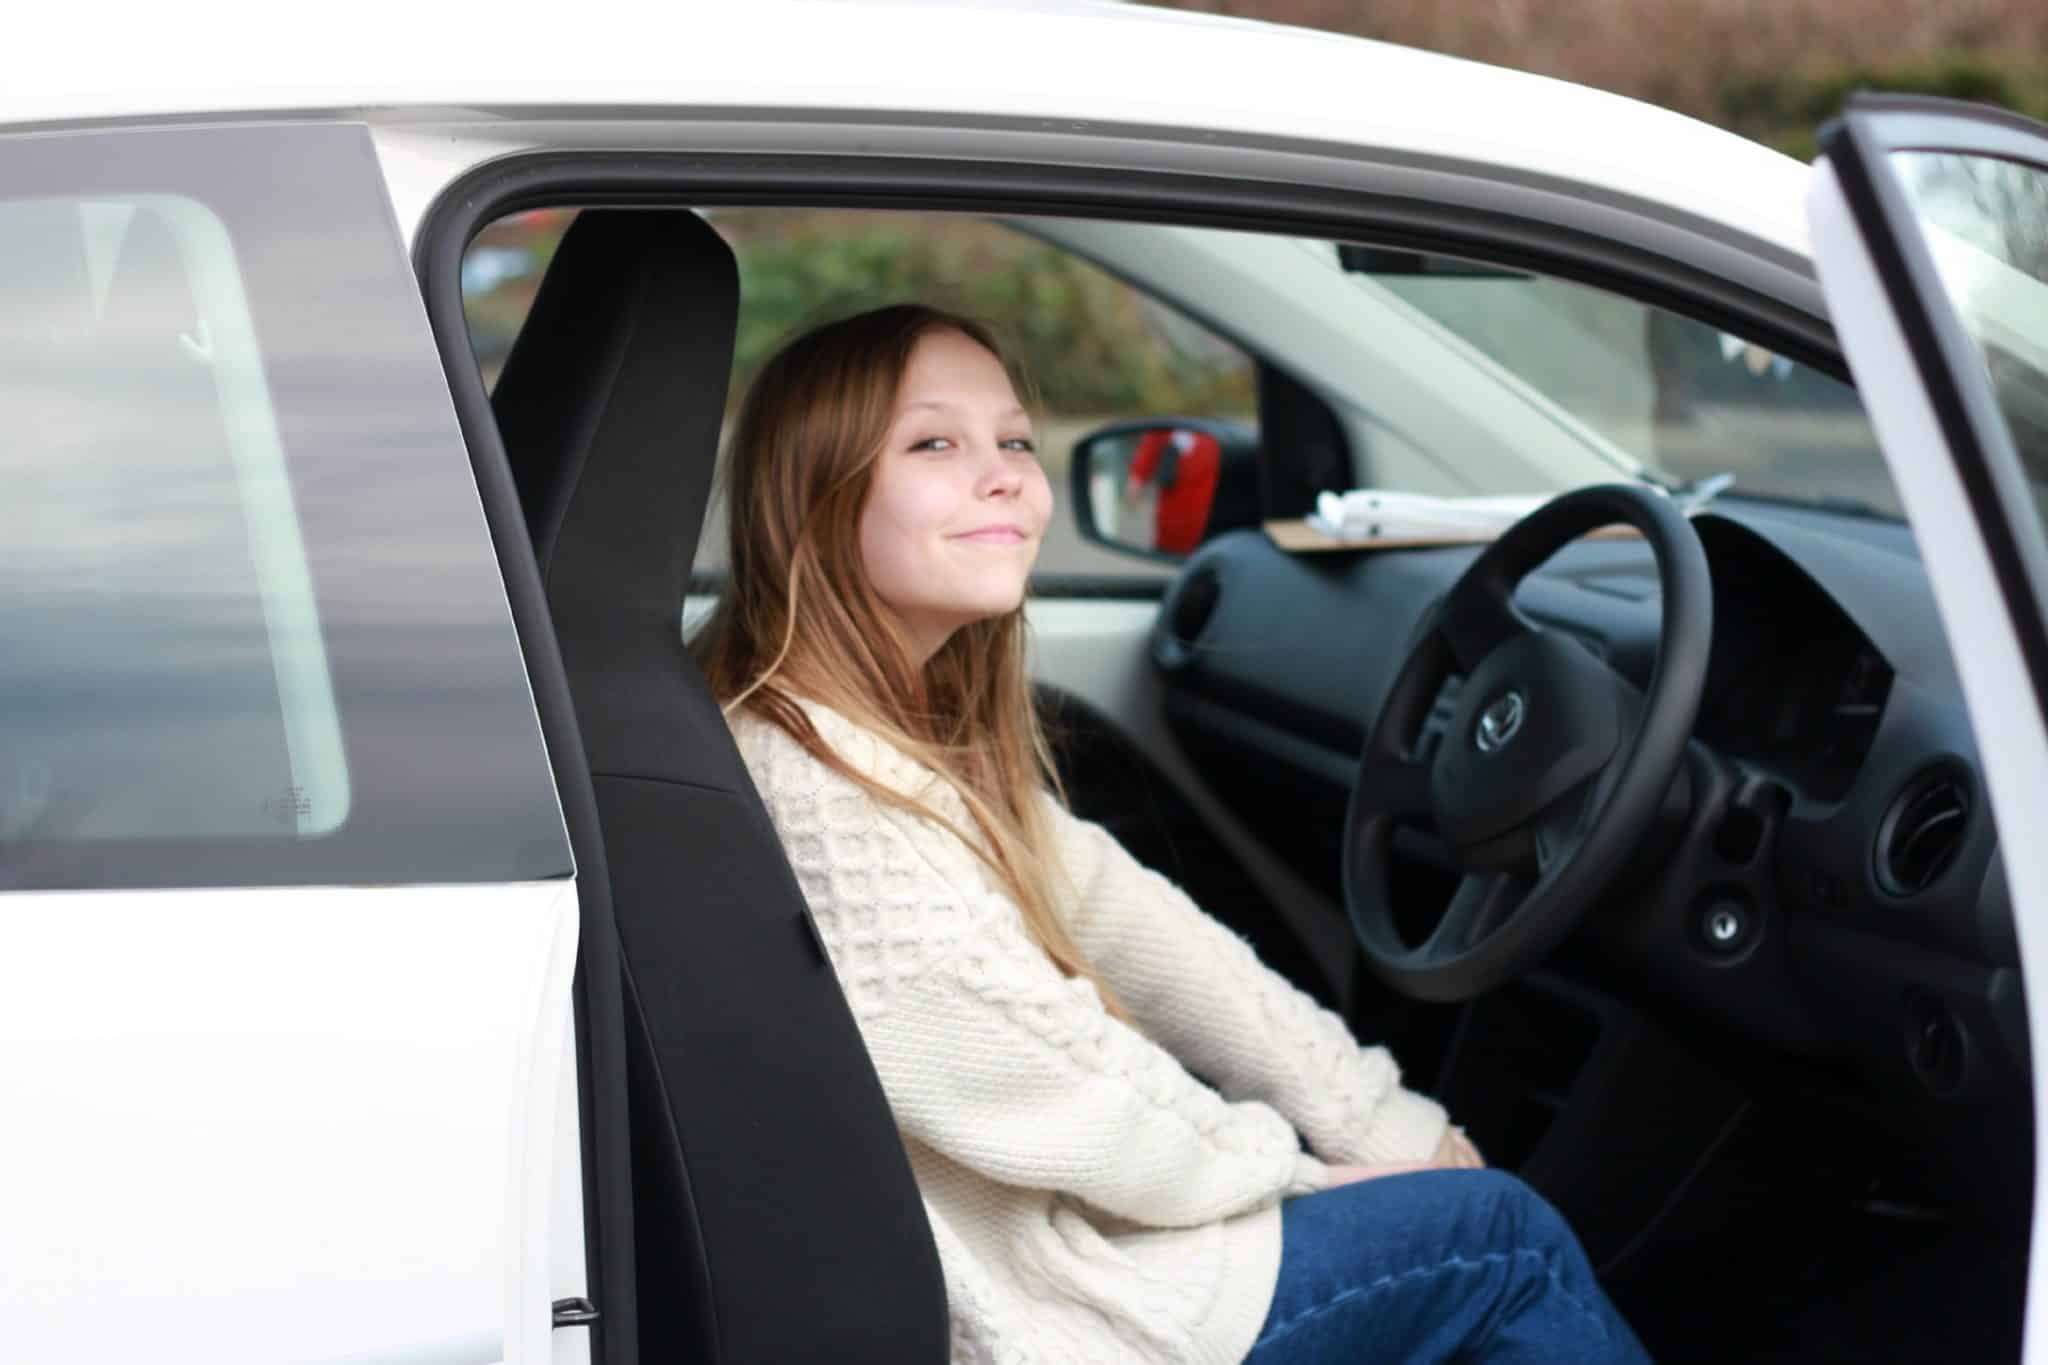 Young driver-holly in car